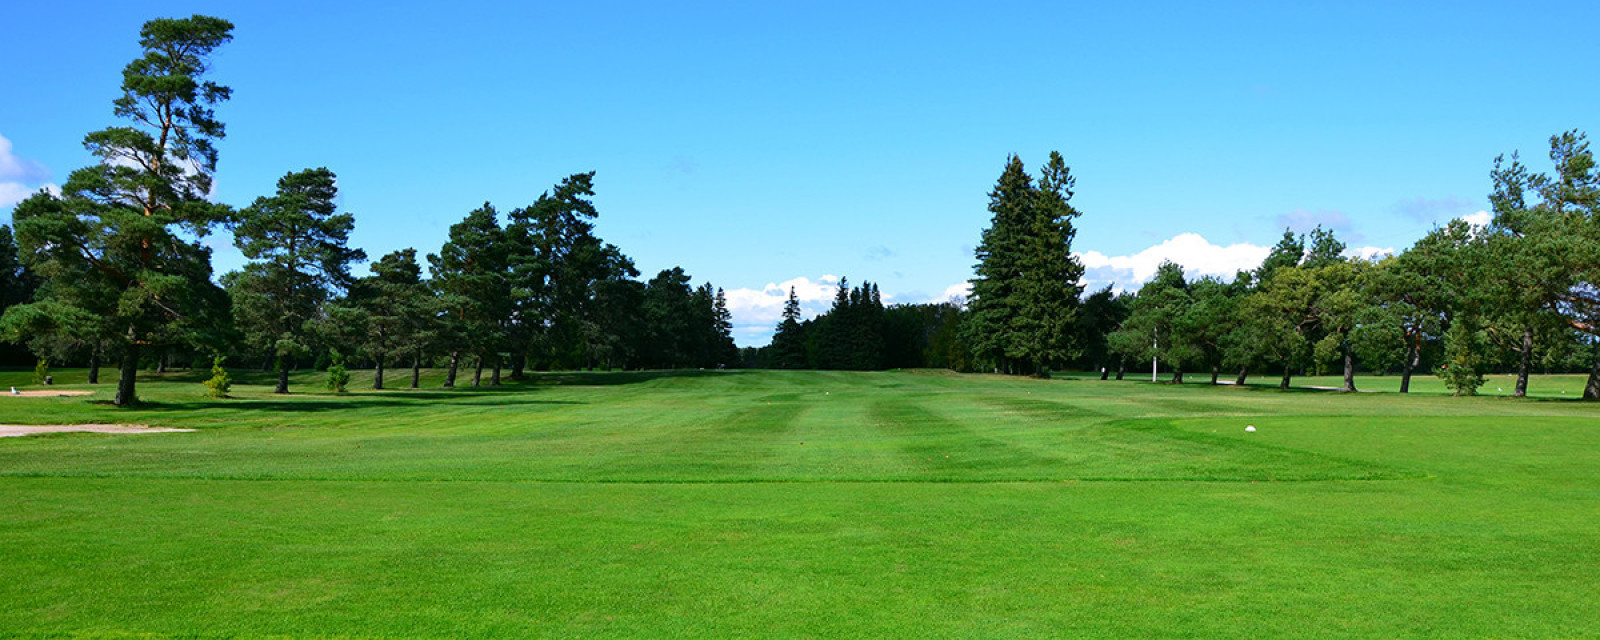 Golf in Wiarton, Ontario